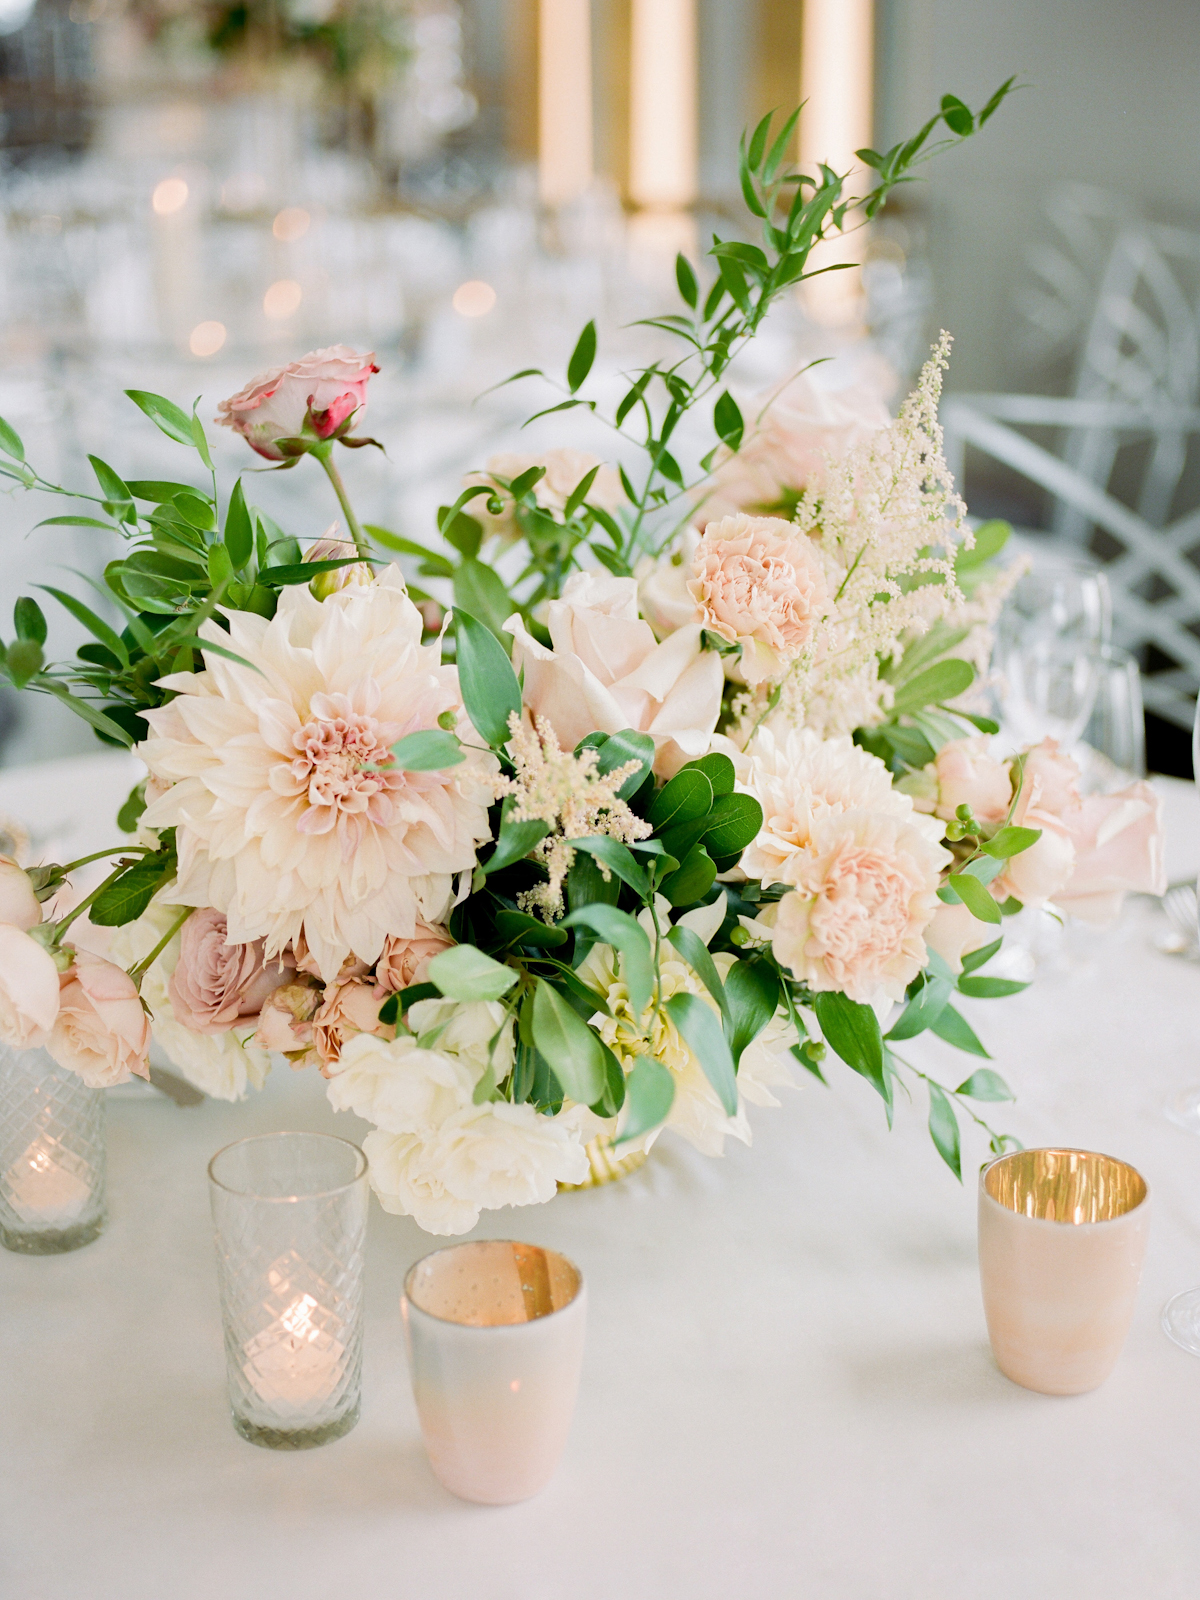 Rainbow Room wedding flowers with dahlia and roses